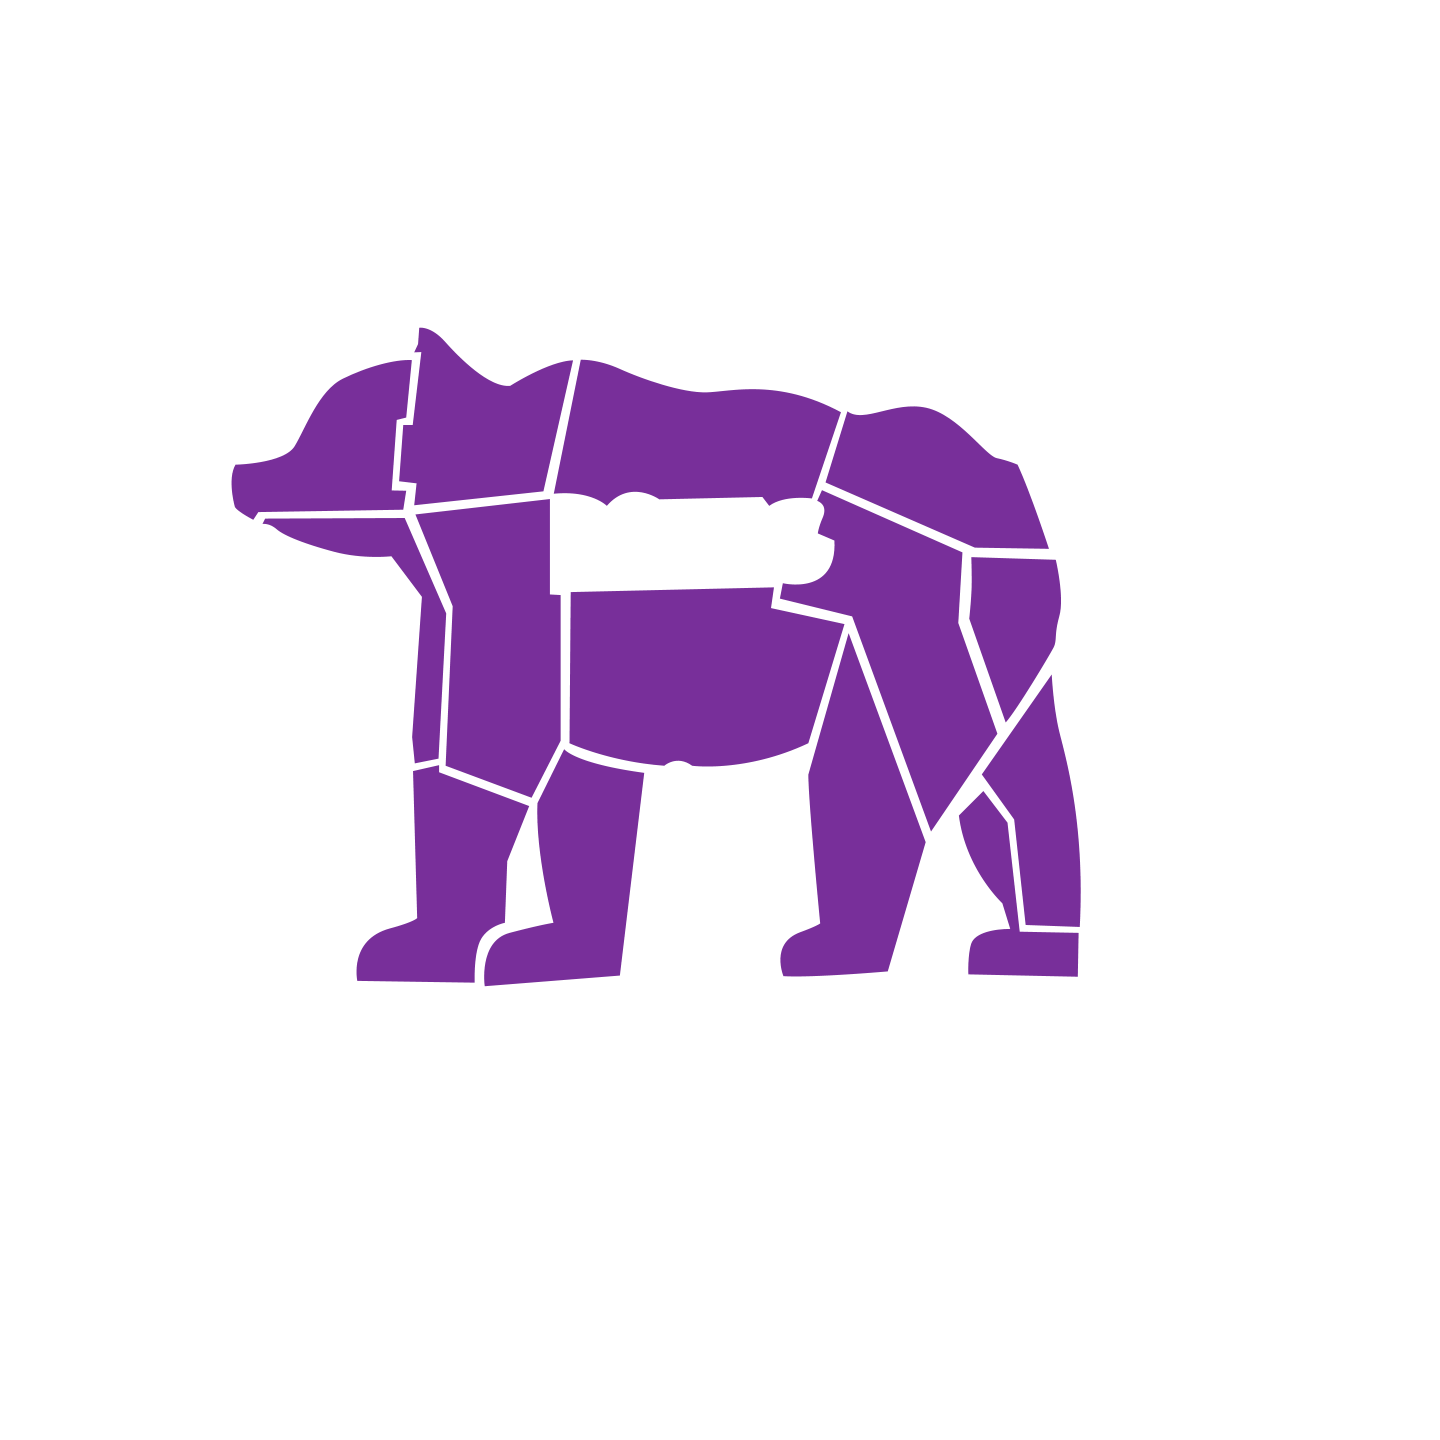 Burnaby Bears Field Hockey Club